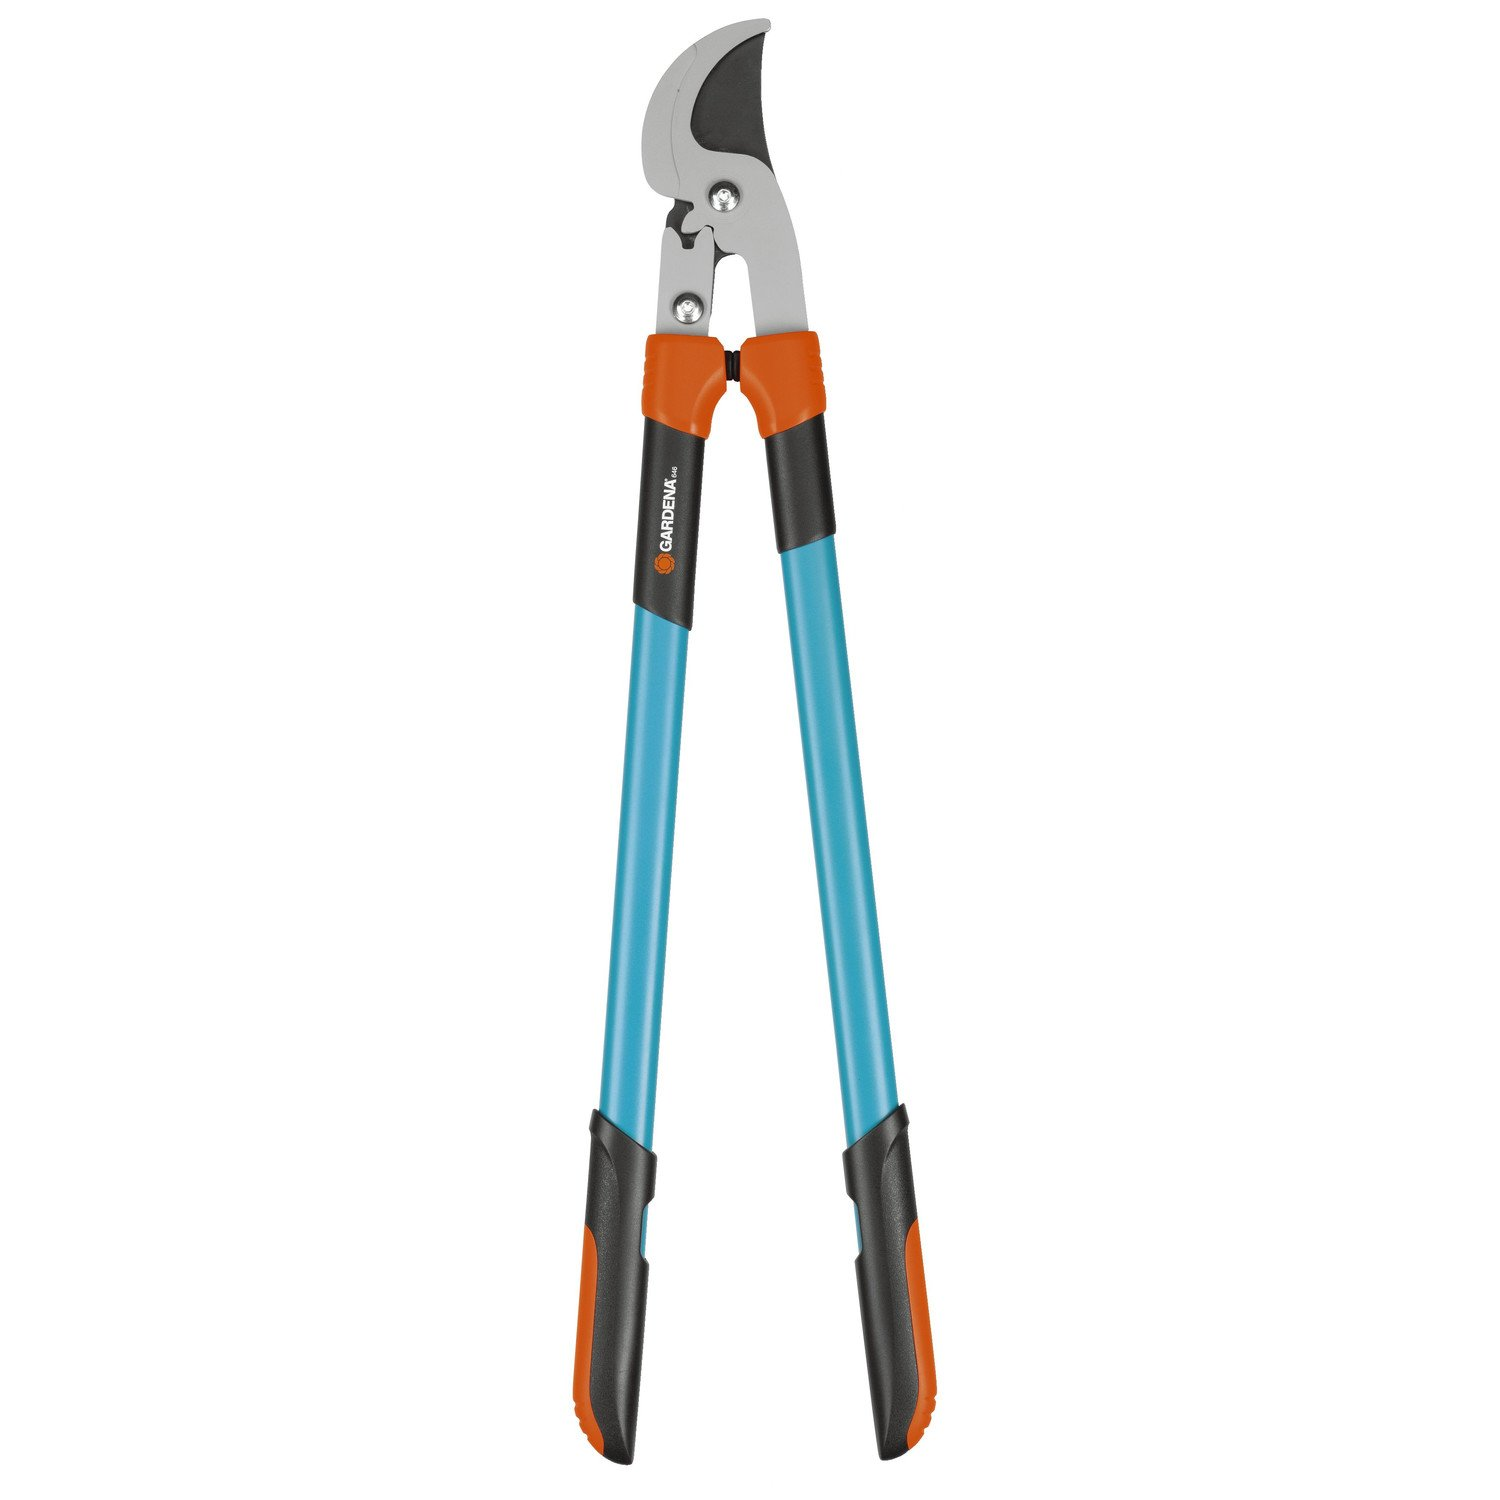 The Simple Pruning Loppers by AytraHome